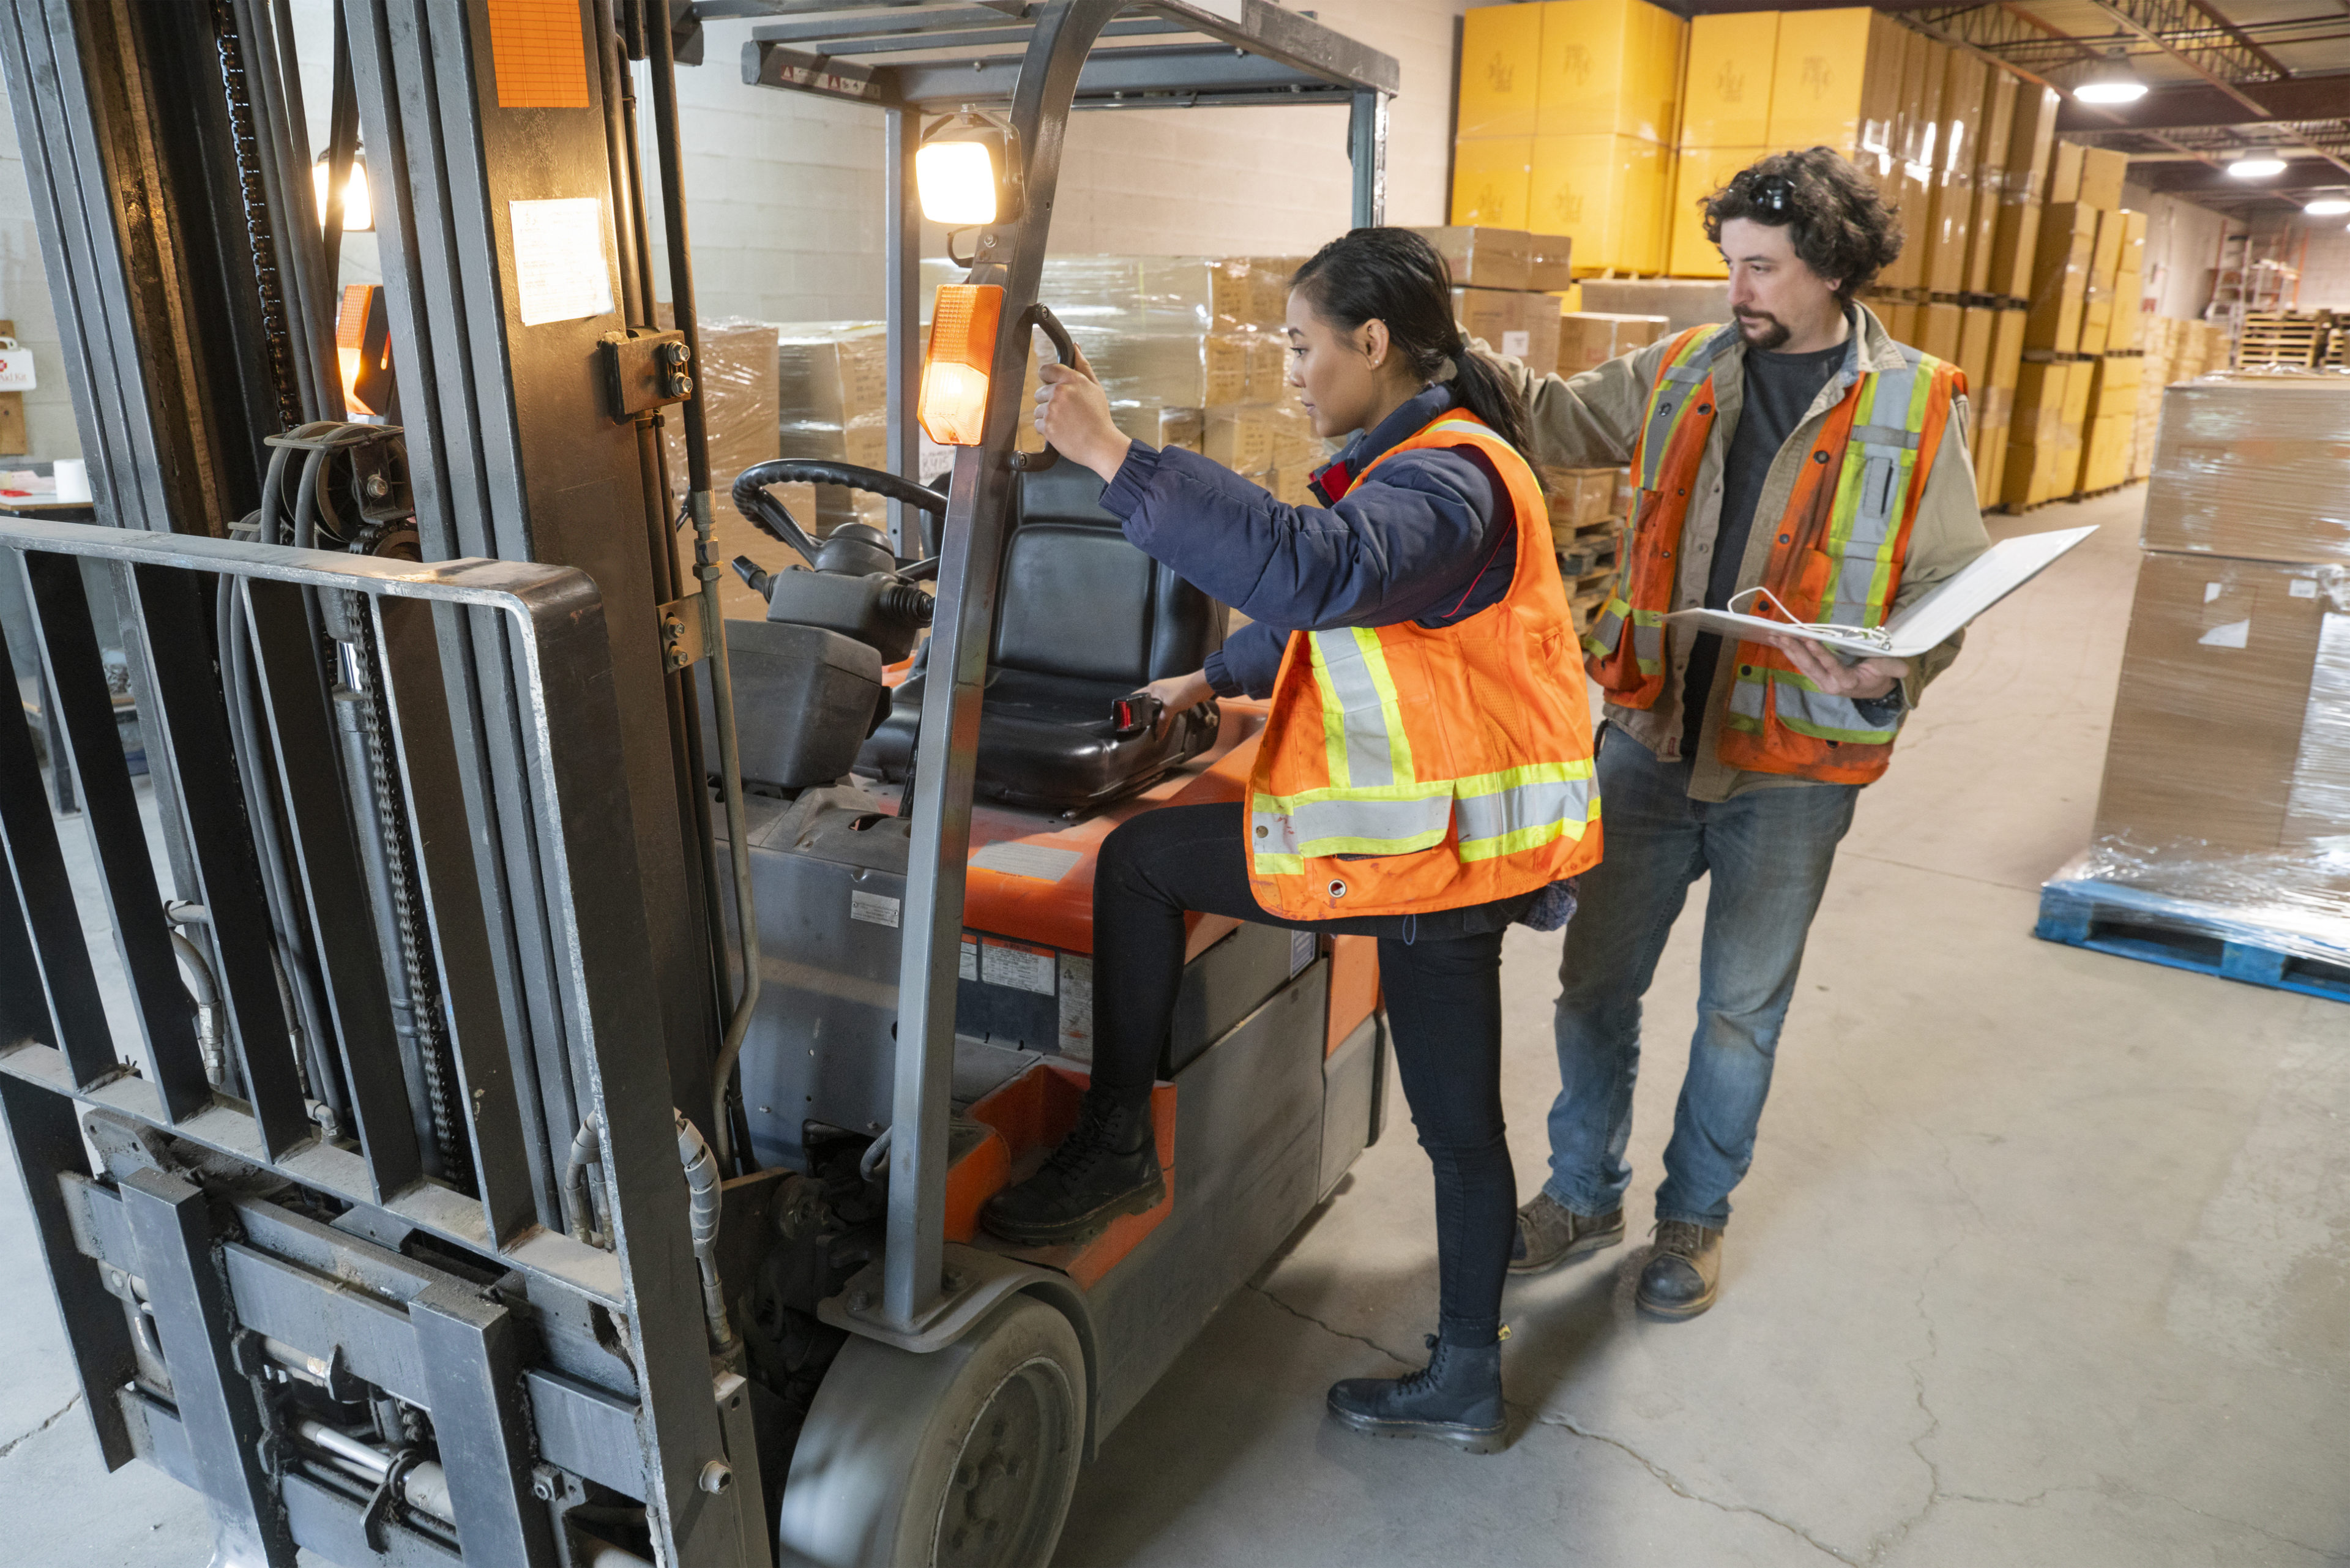 An industrial warehouse workplace safety topic. A safety supervisor or manager training a new employee on forklift safety.